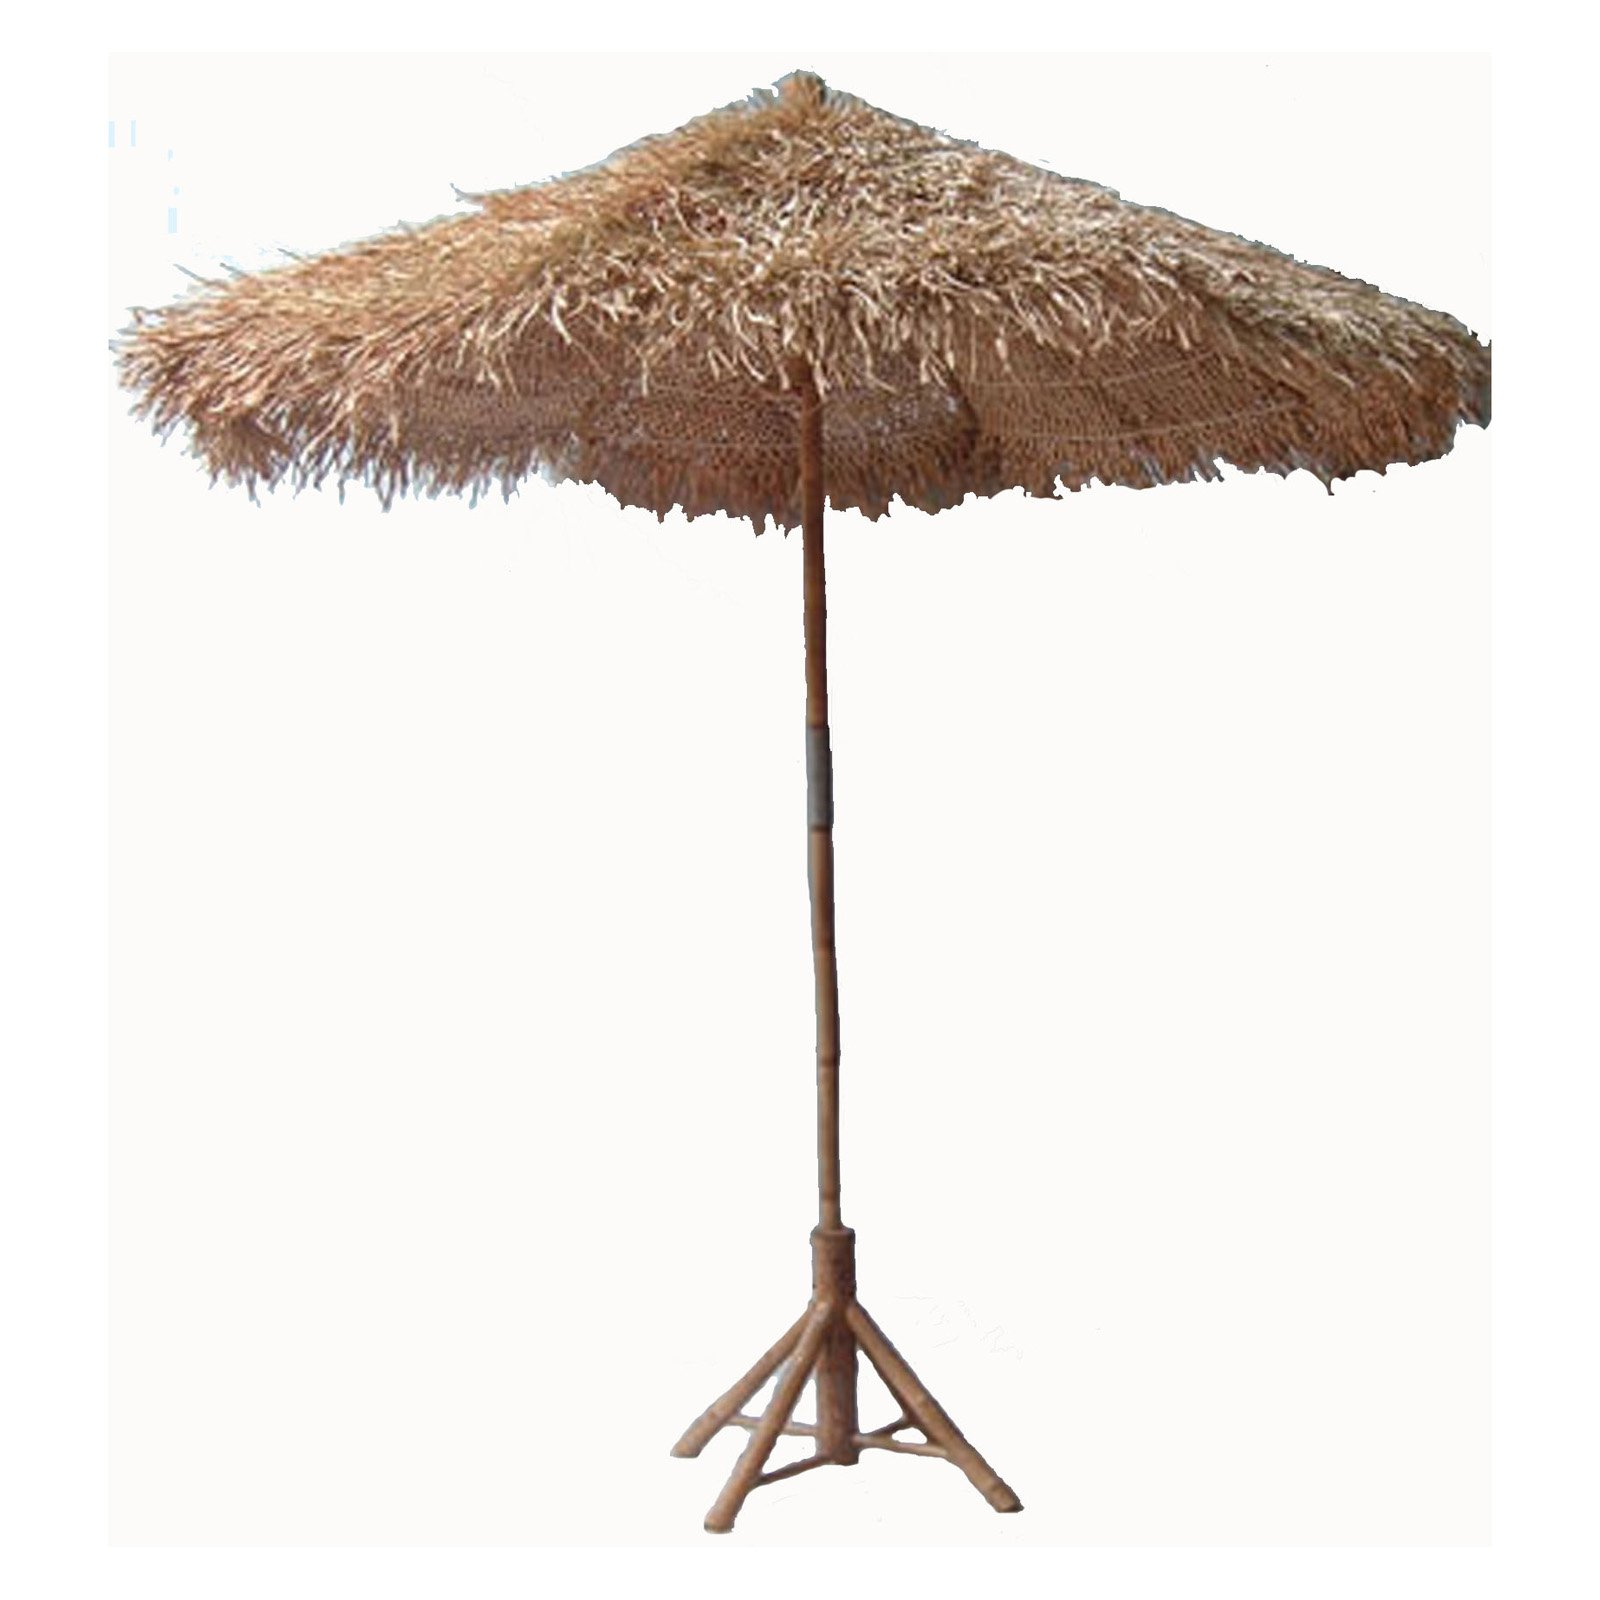 Bamboo54 Thatch Patio Umbrella